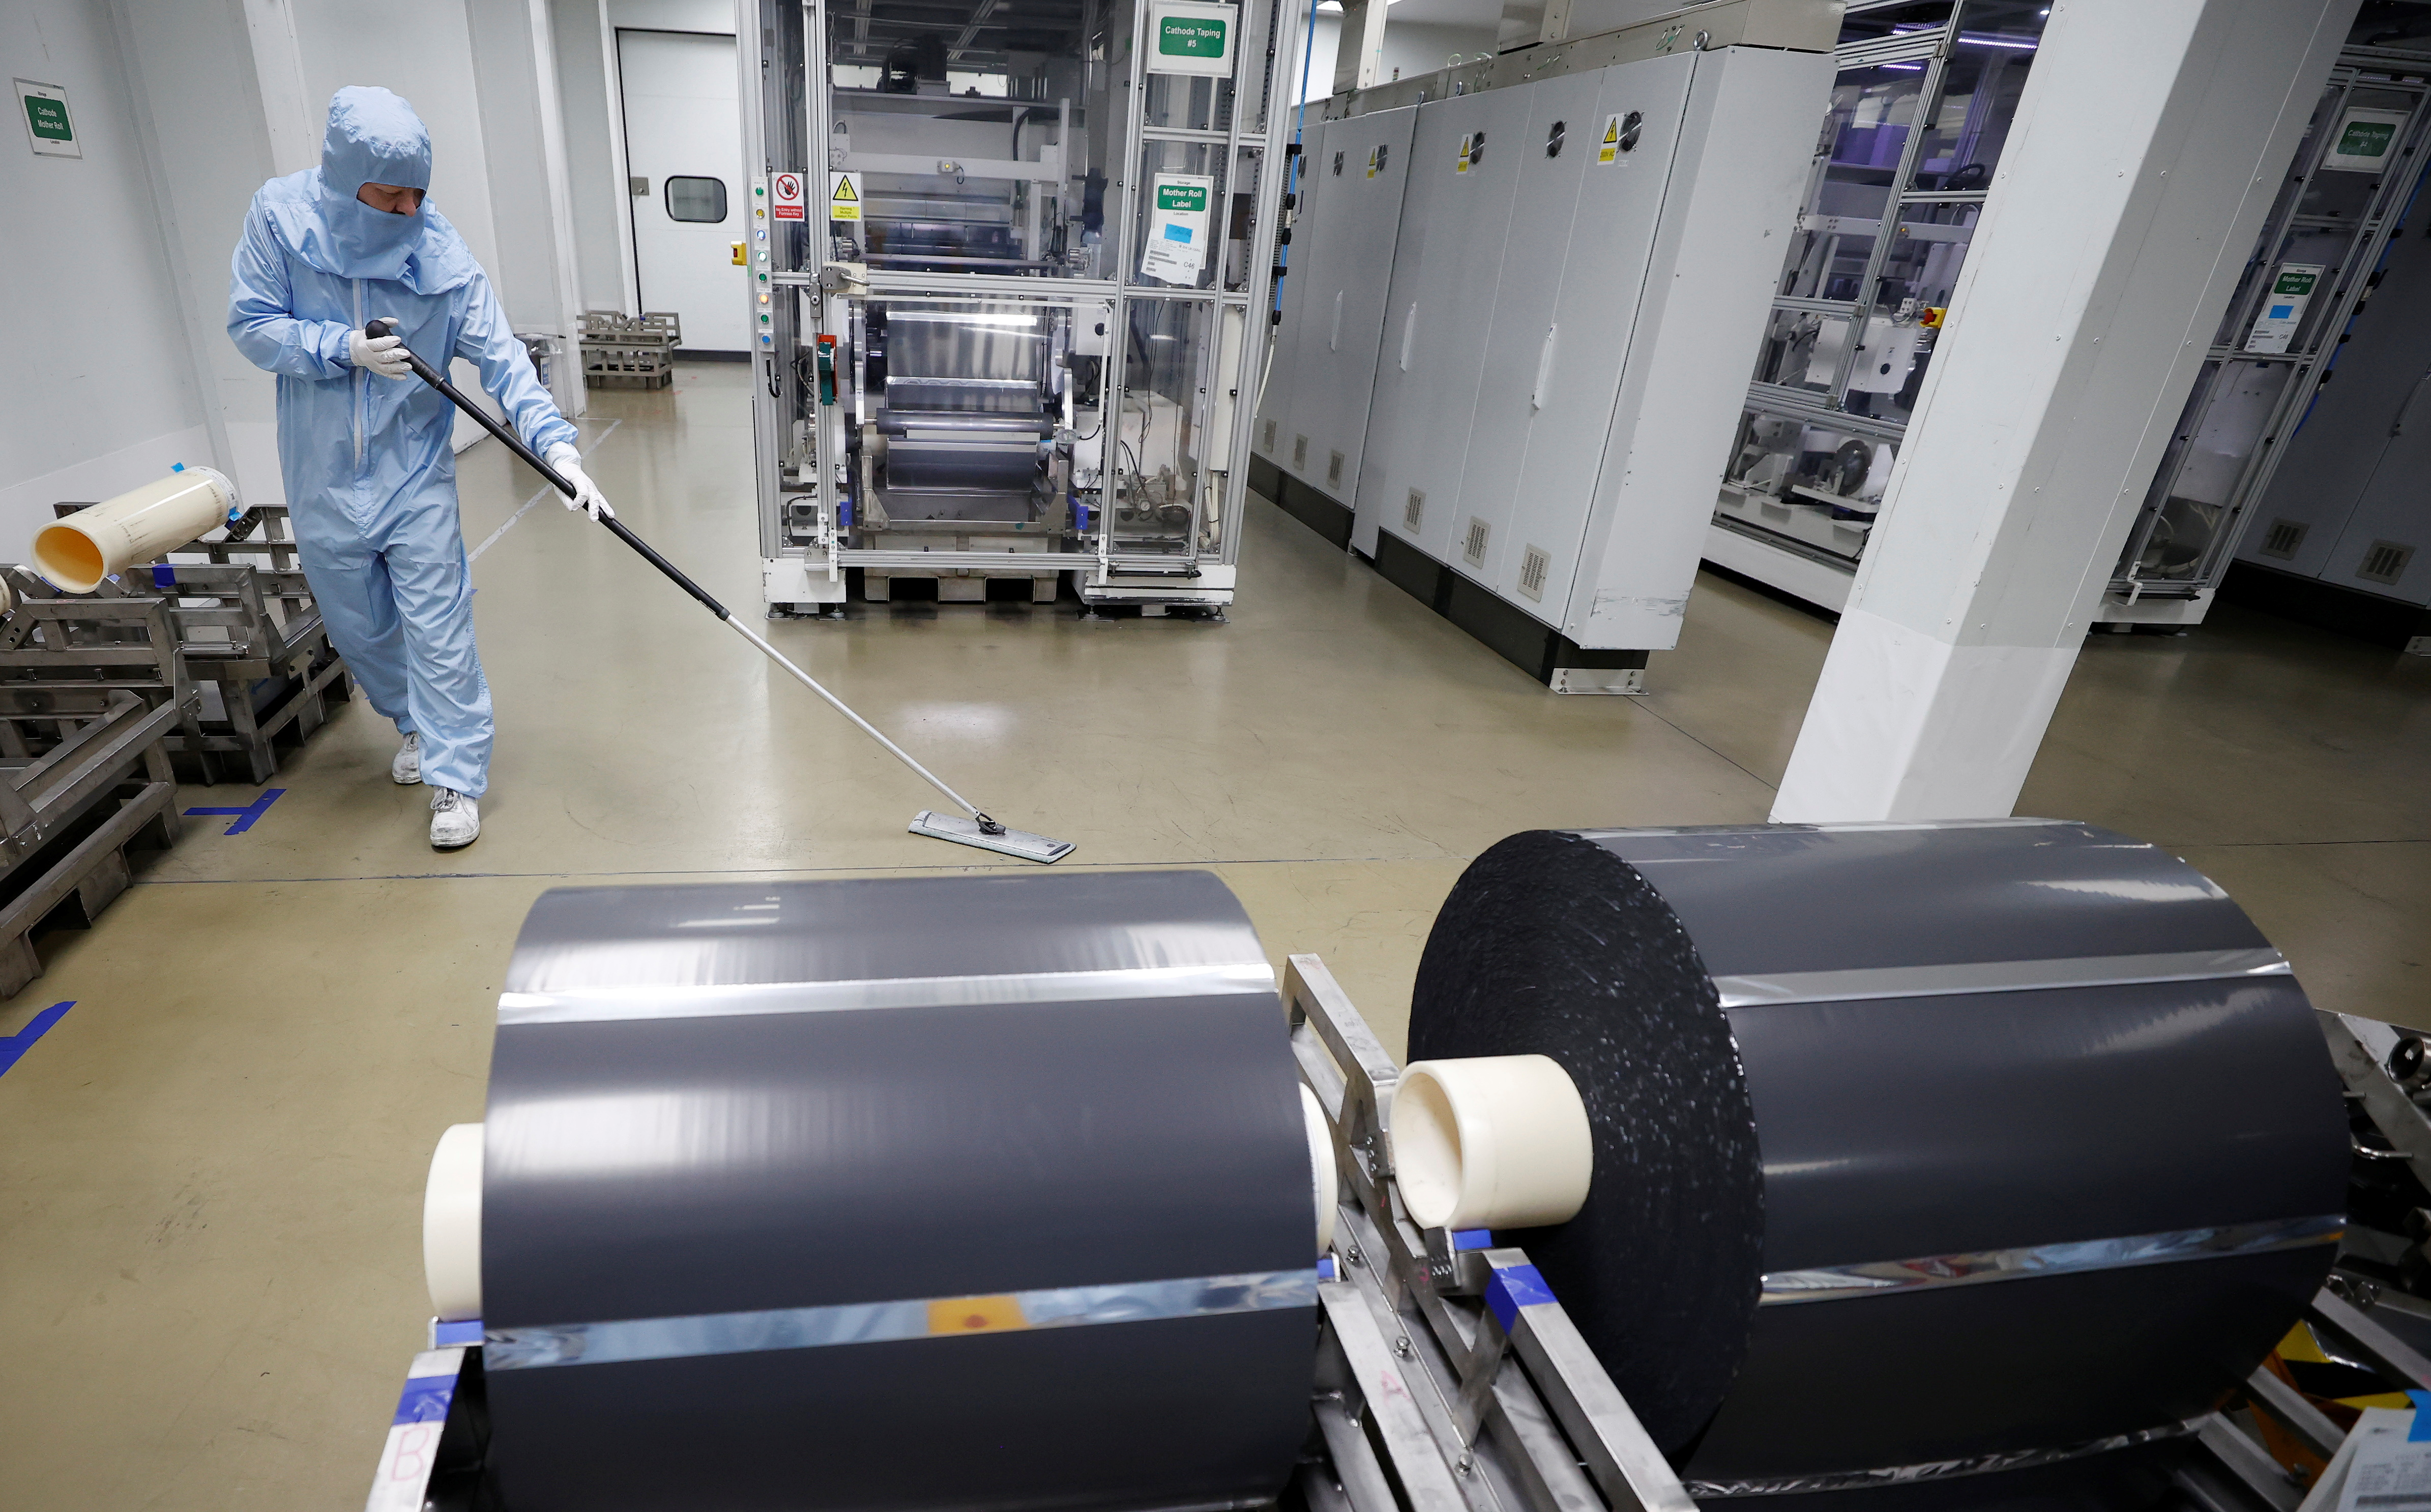 A worker in a protective suit sweeps the floor inside the Envision battery manufacturing plant at Nissan's Sunderland factory, Britain, July 1, 2021. REUTERS/Phil Noble